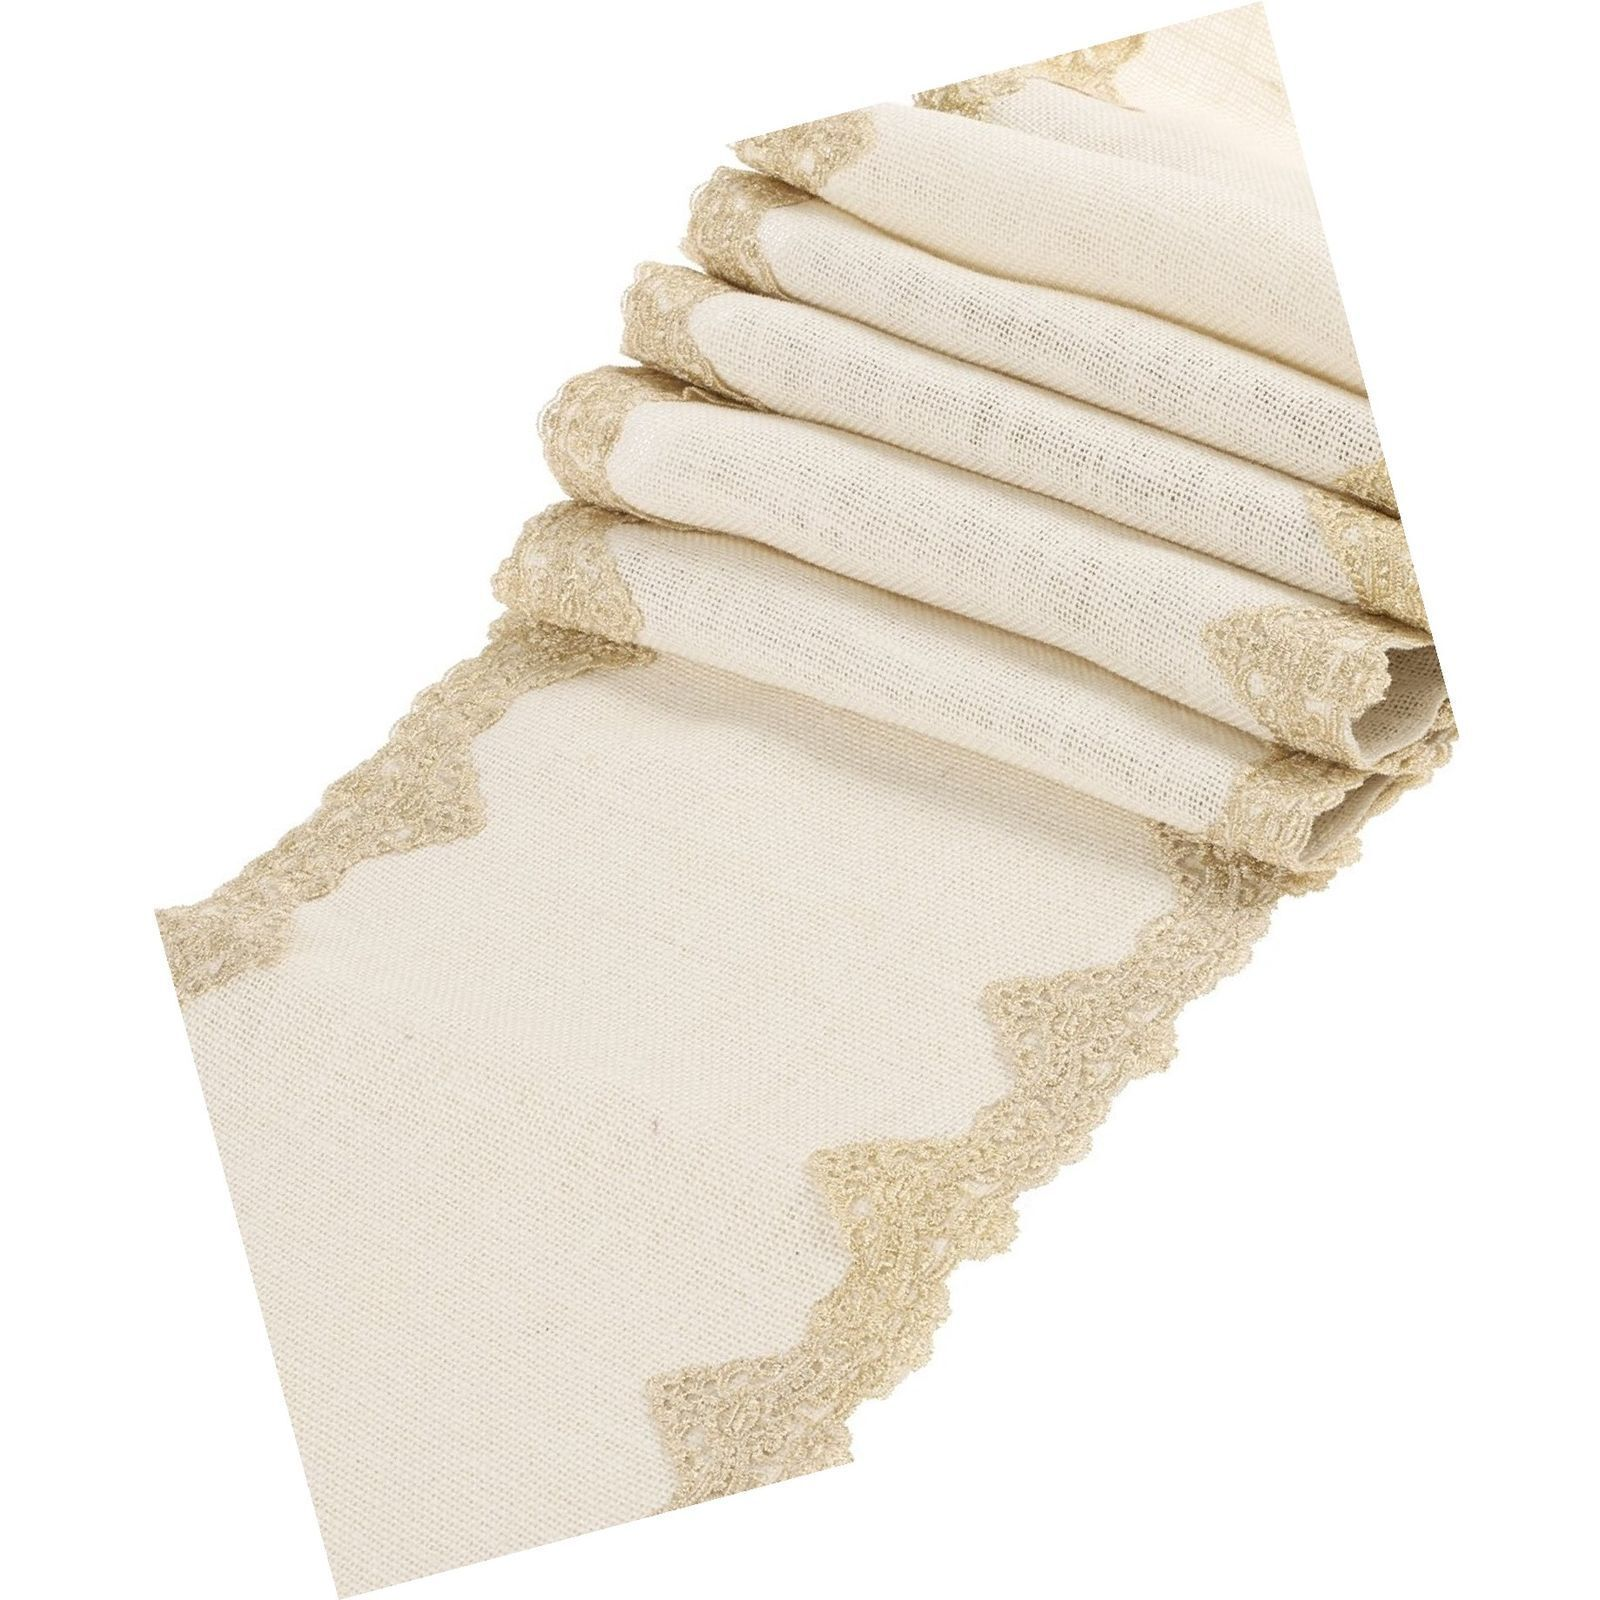 Ling's moment 12x72 inch Ivory Burlap Hessian Table Runner w